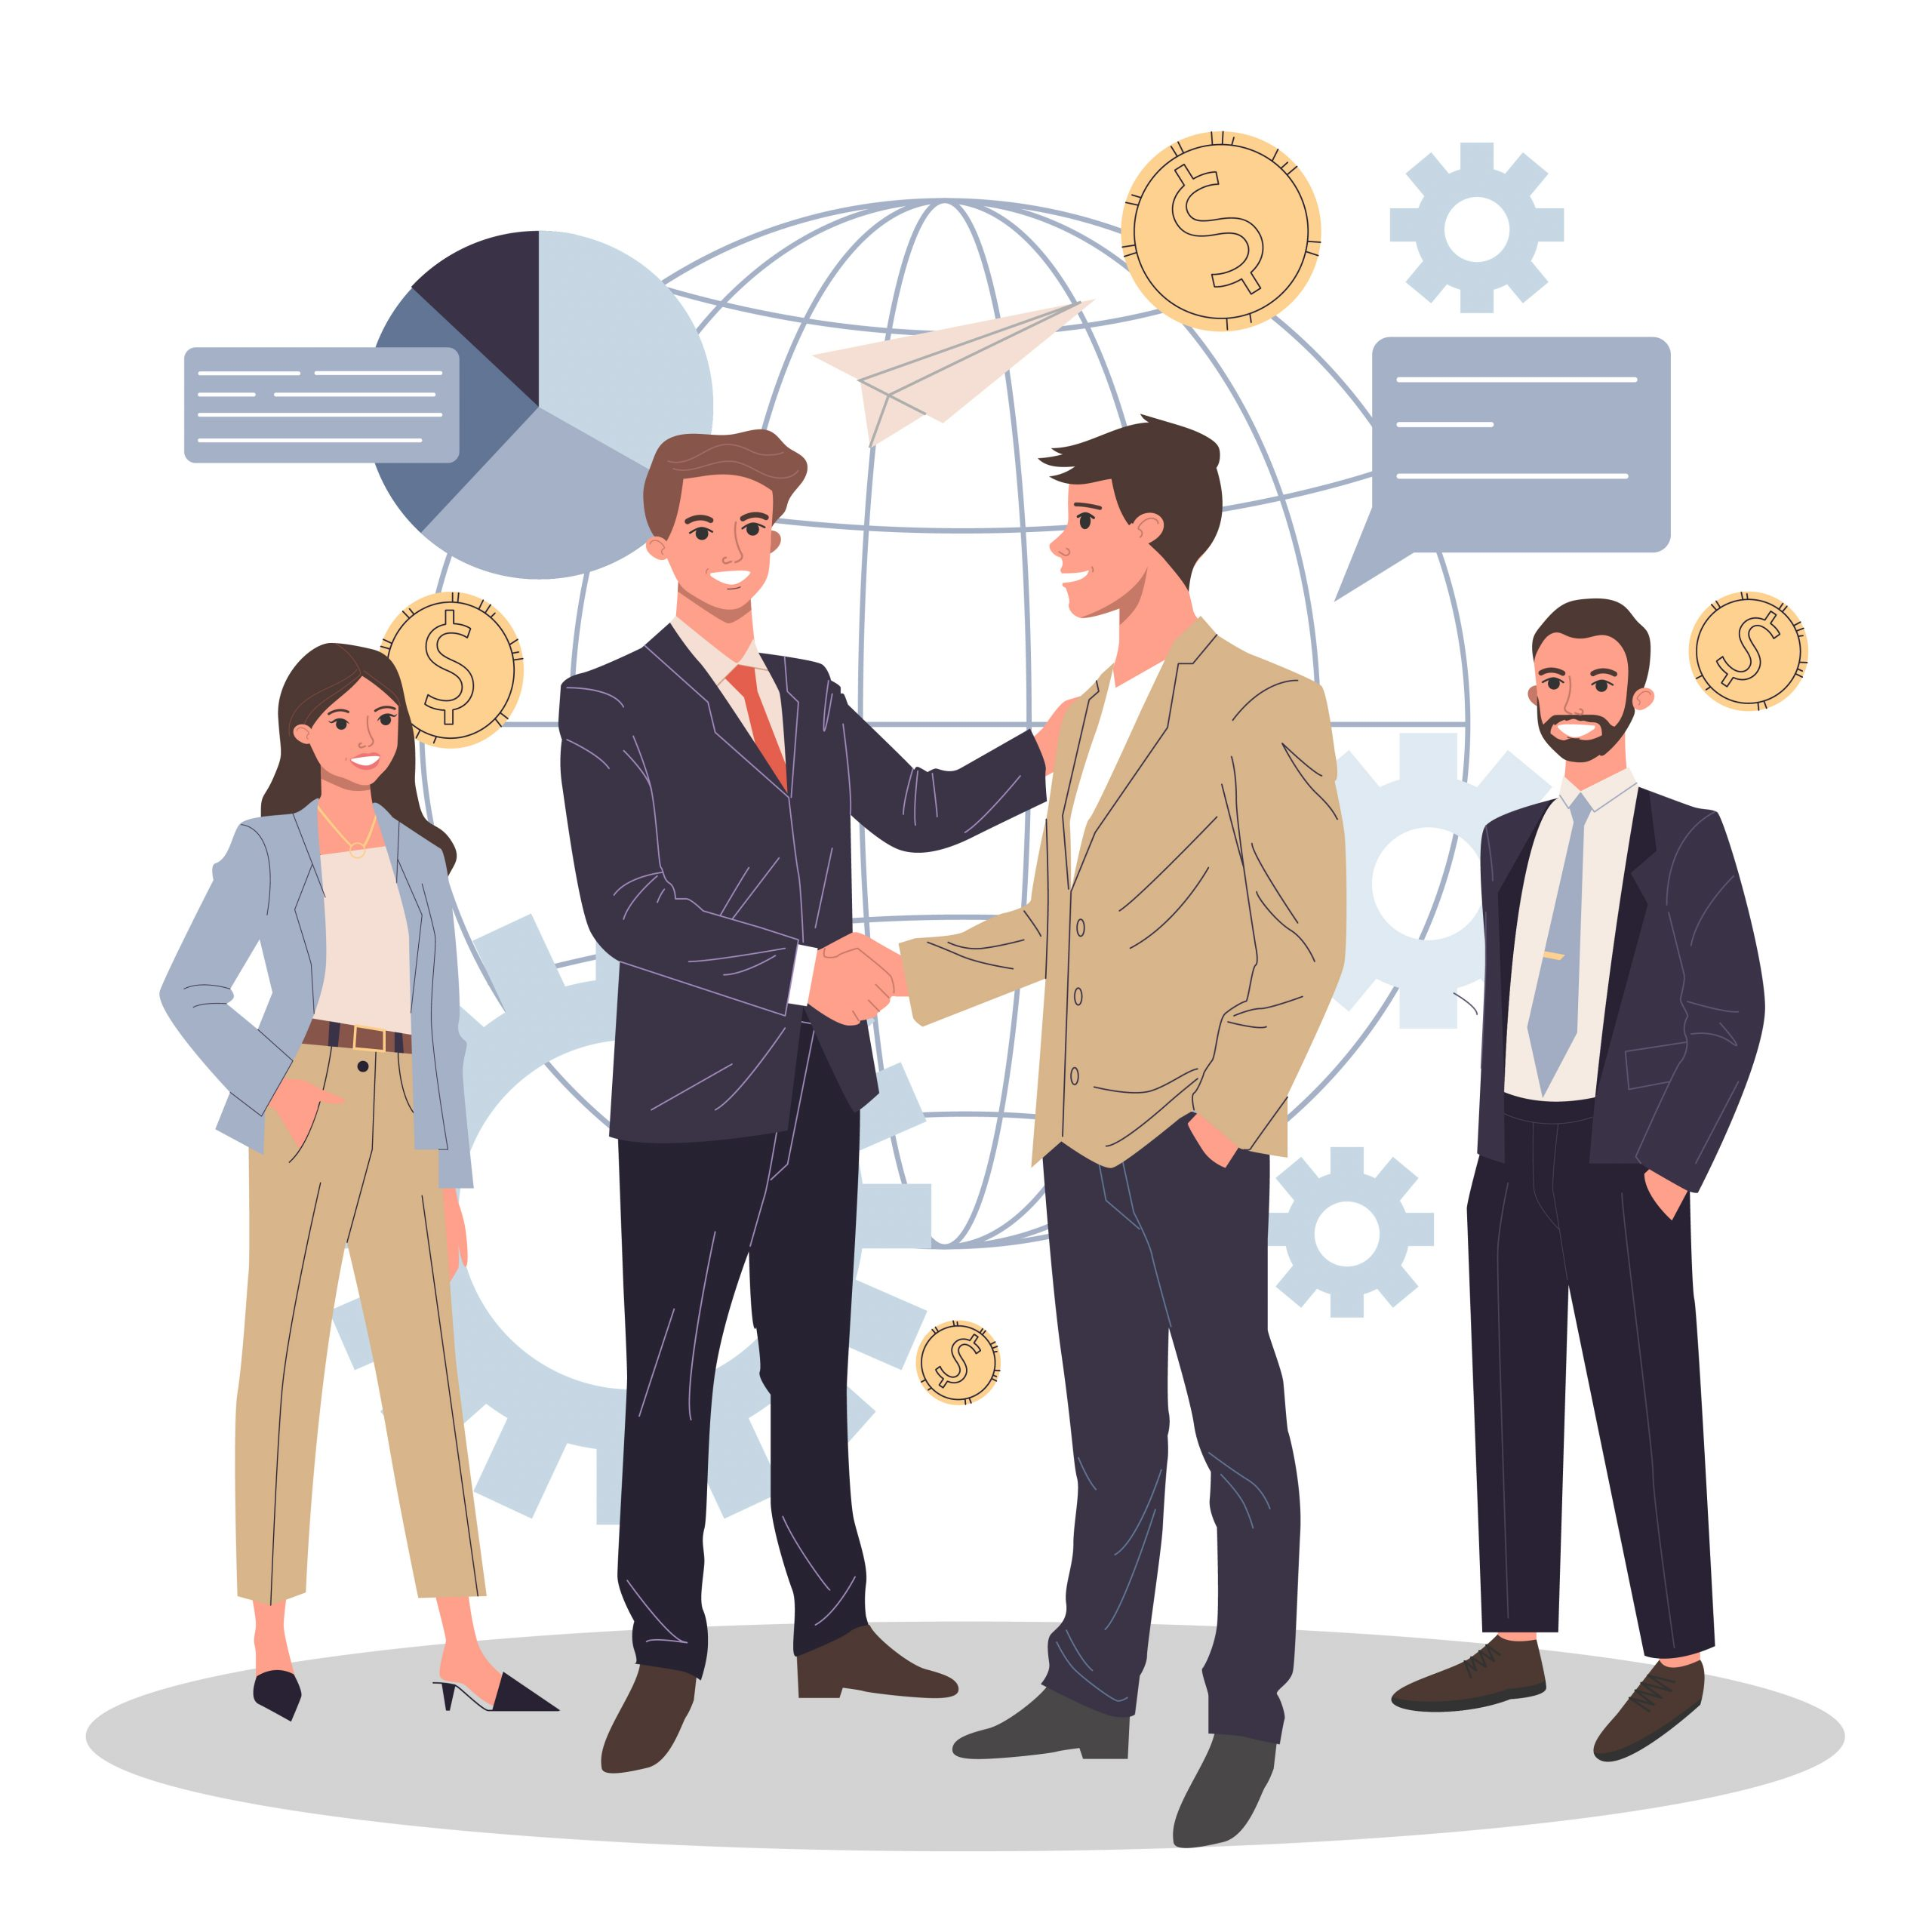 Global business partnership flat vector illustration. International teamwork, negotiation and success concept. Two partners shaking hands and making agreement.